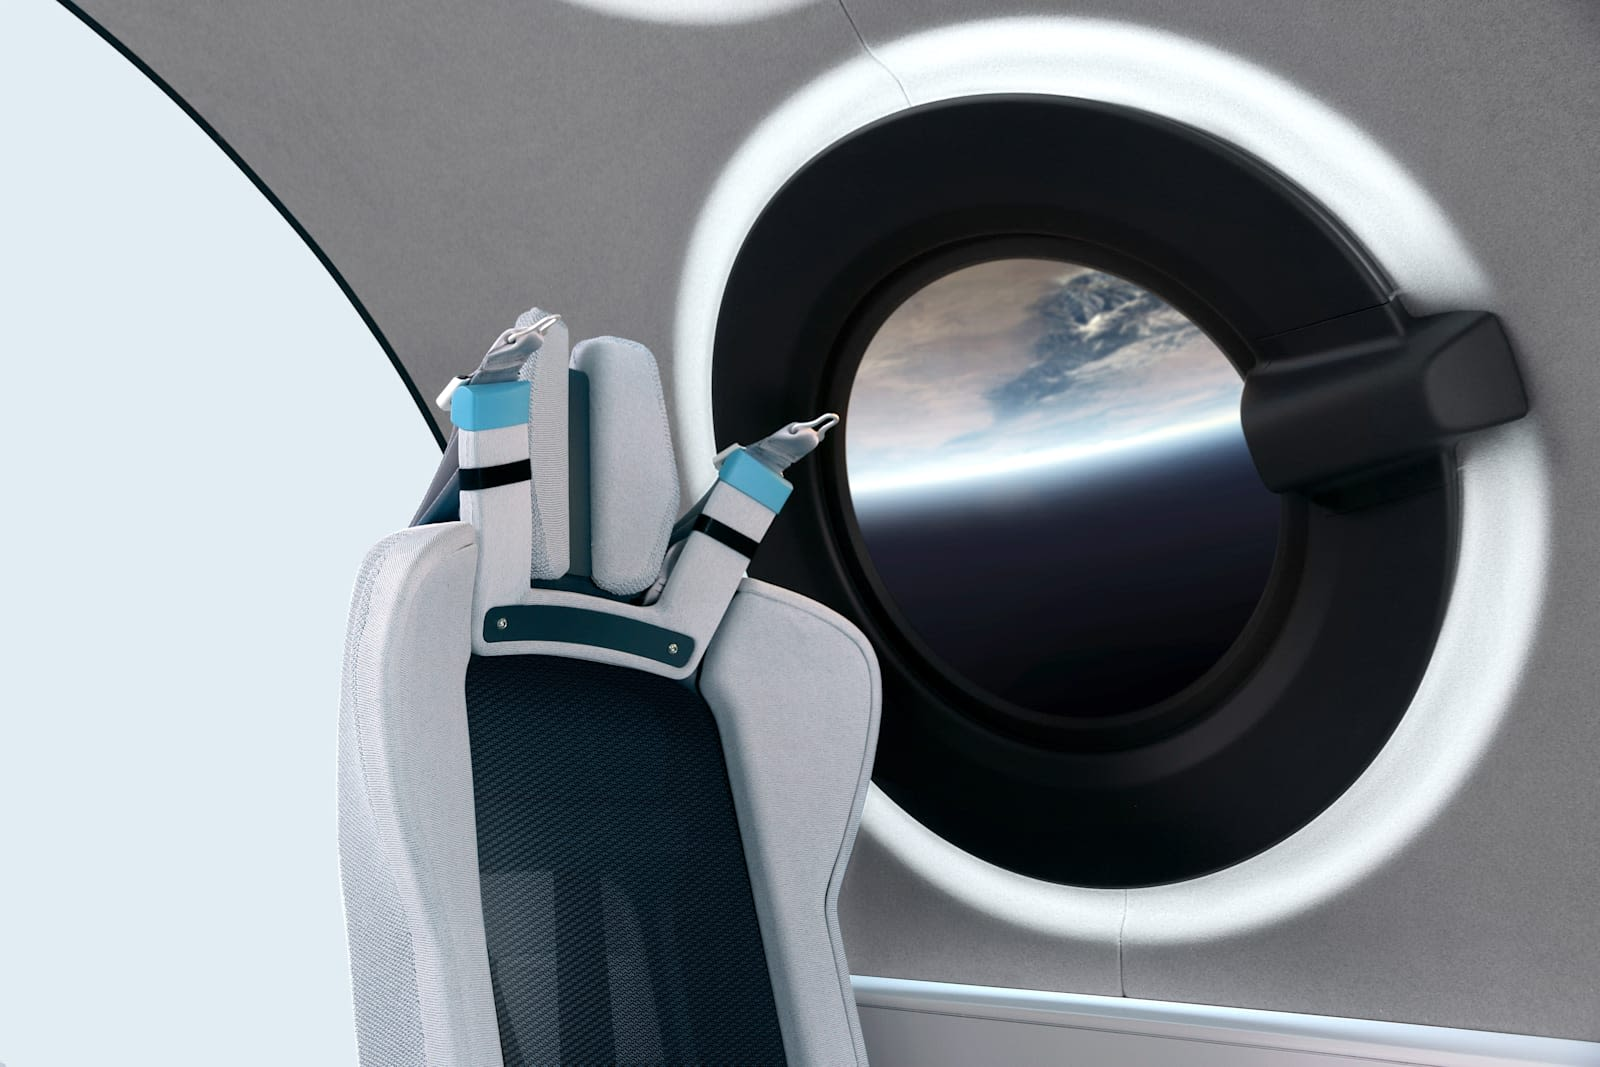 Photo of Virgin Galactic's spaceship cabin interior